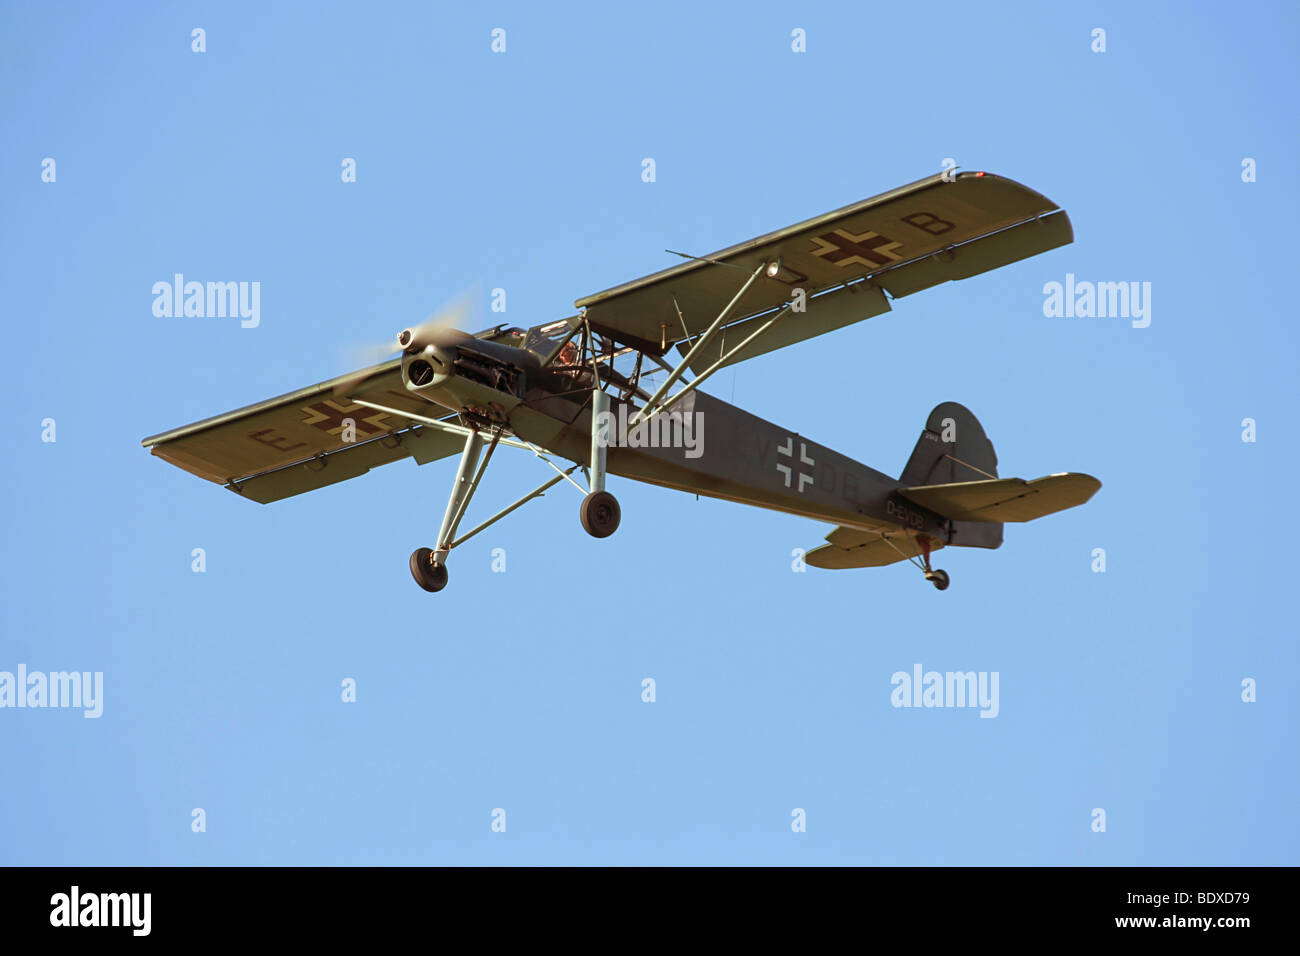 Historic aircraft, Fieseler Fi 156 Storch, ID D EV-DB, built in 1942 - Stock Image